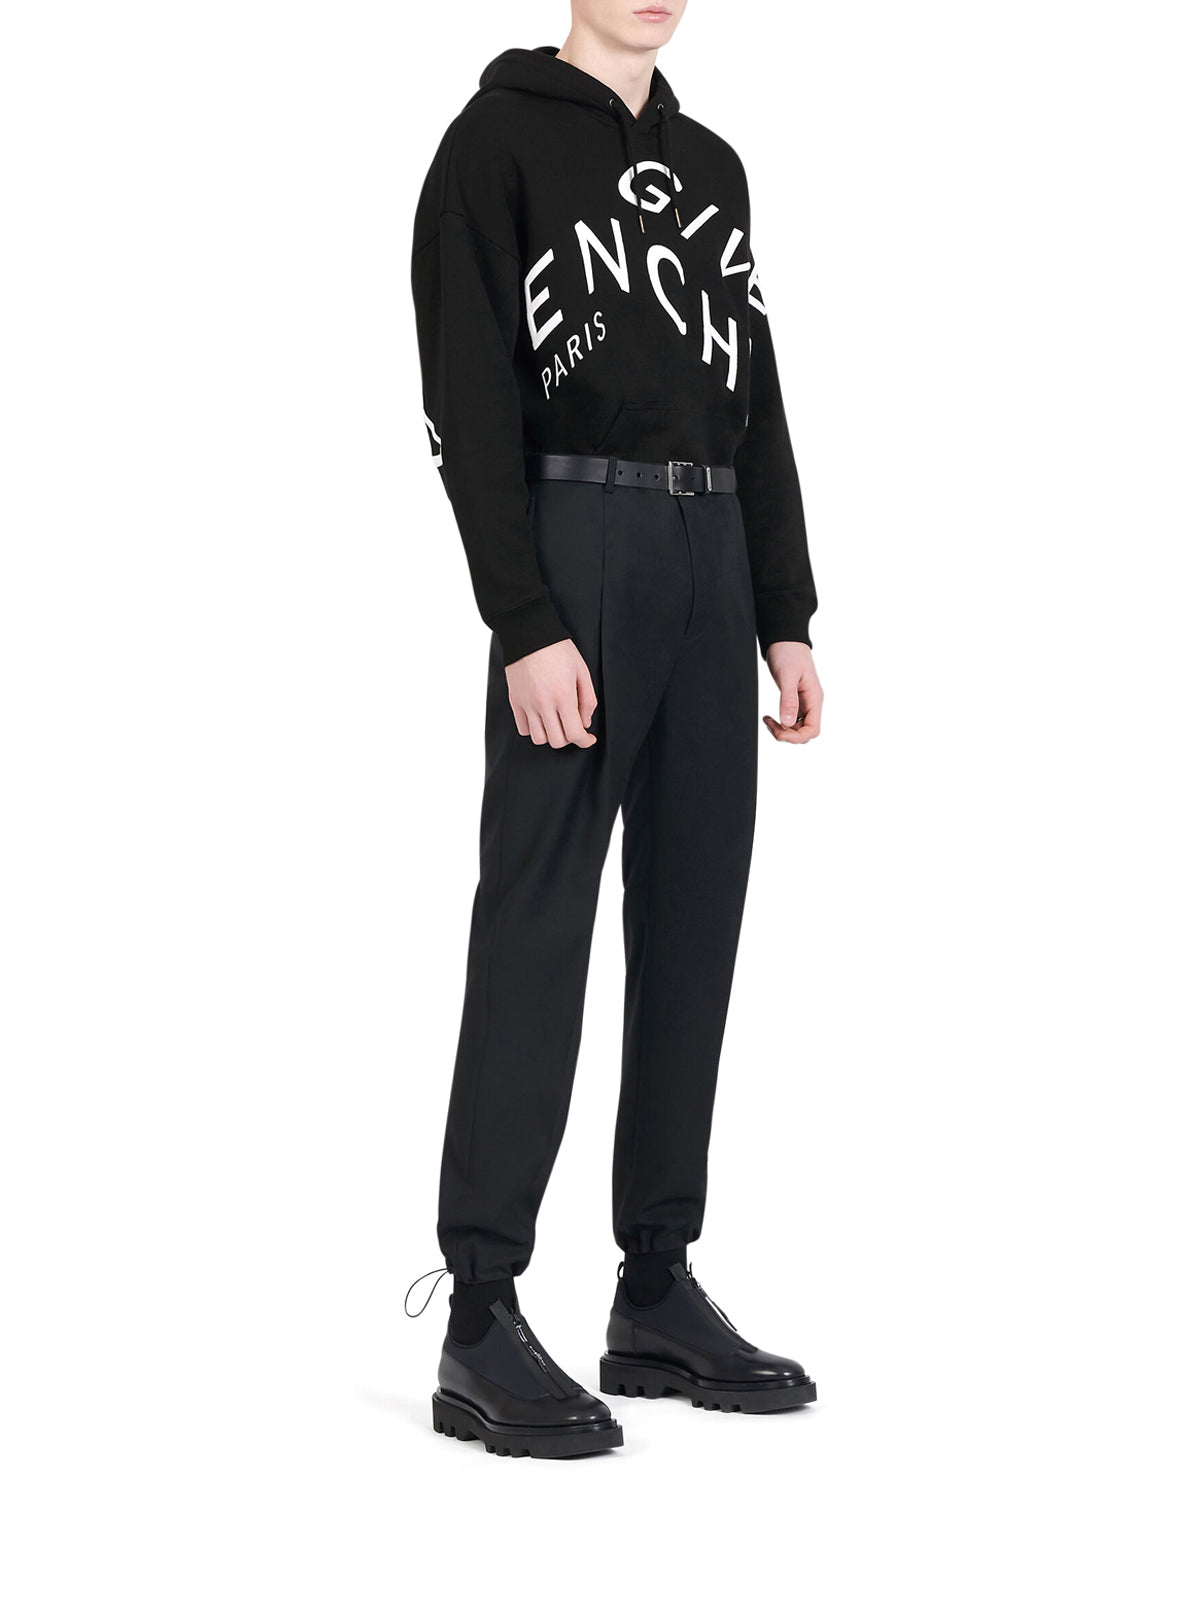 GIVENCHY REFRACTED SWEATSHIRT WITH EMBROIDERY